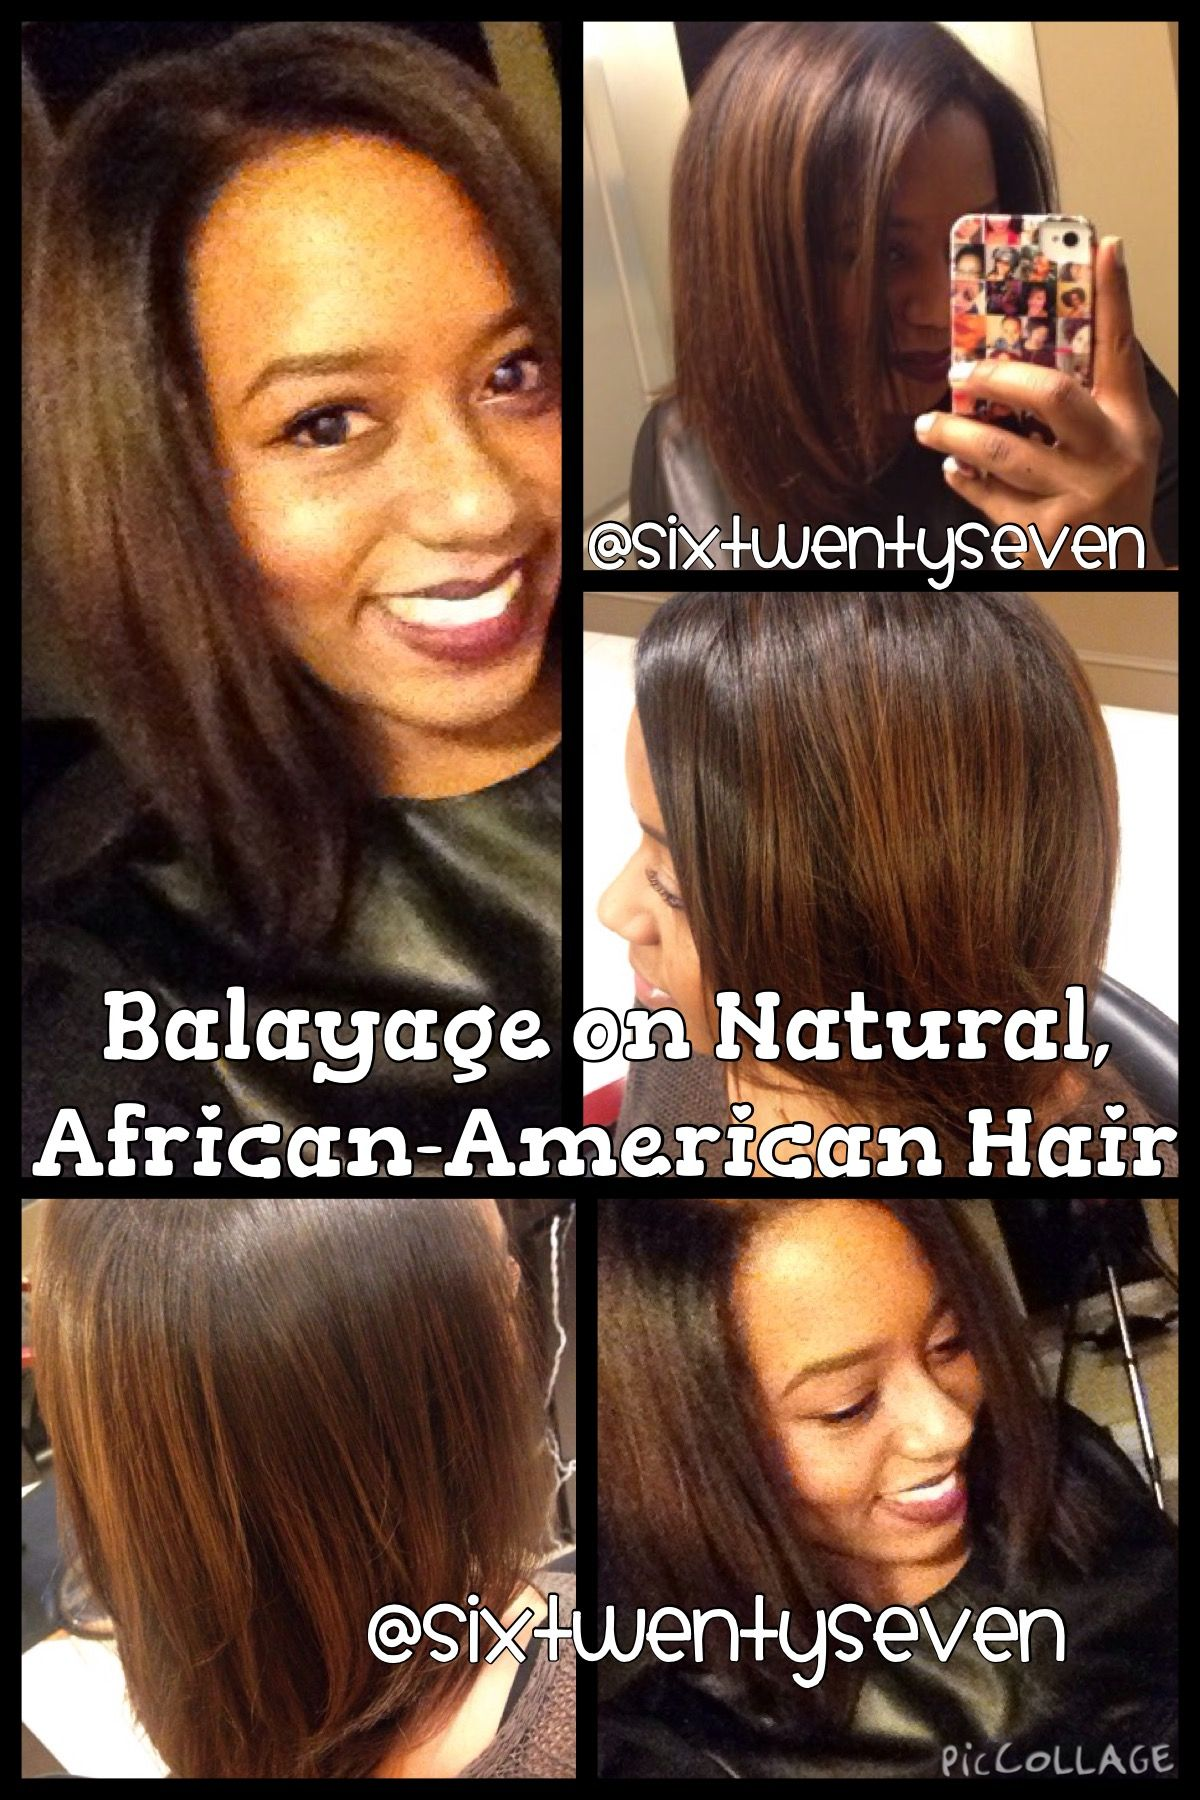 Results Of The Balayage Technique On Natural African